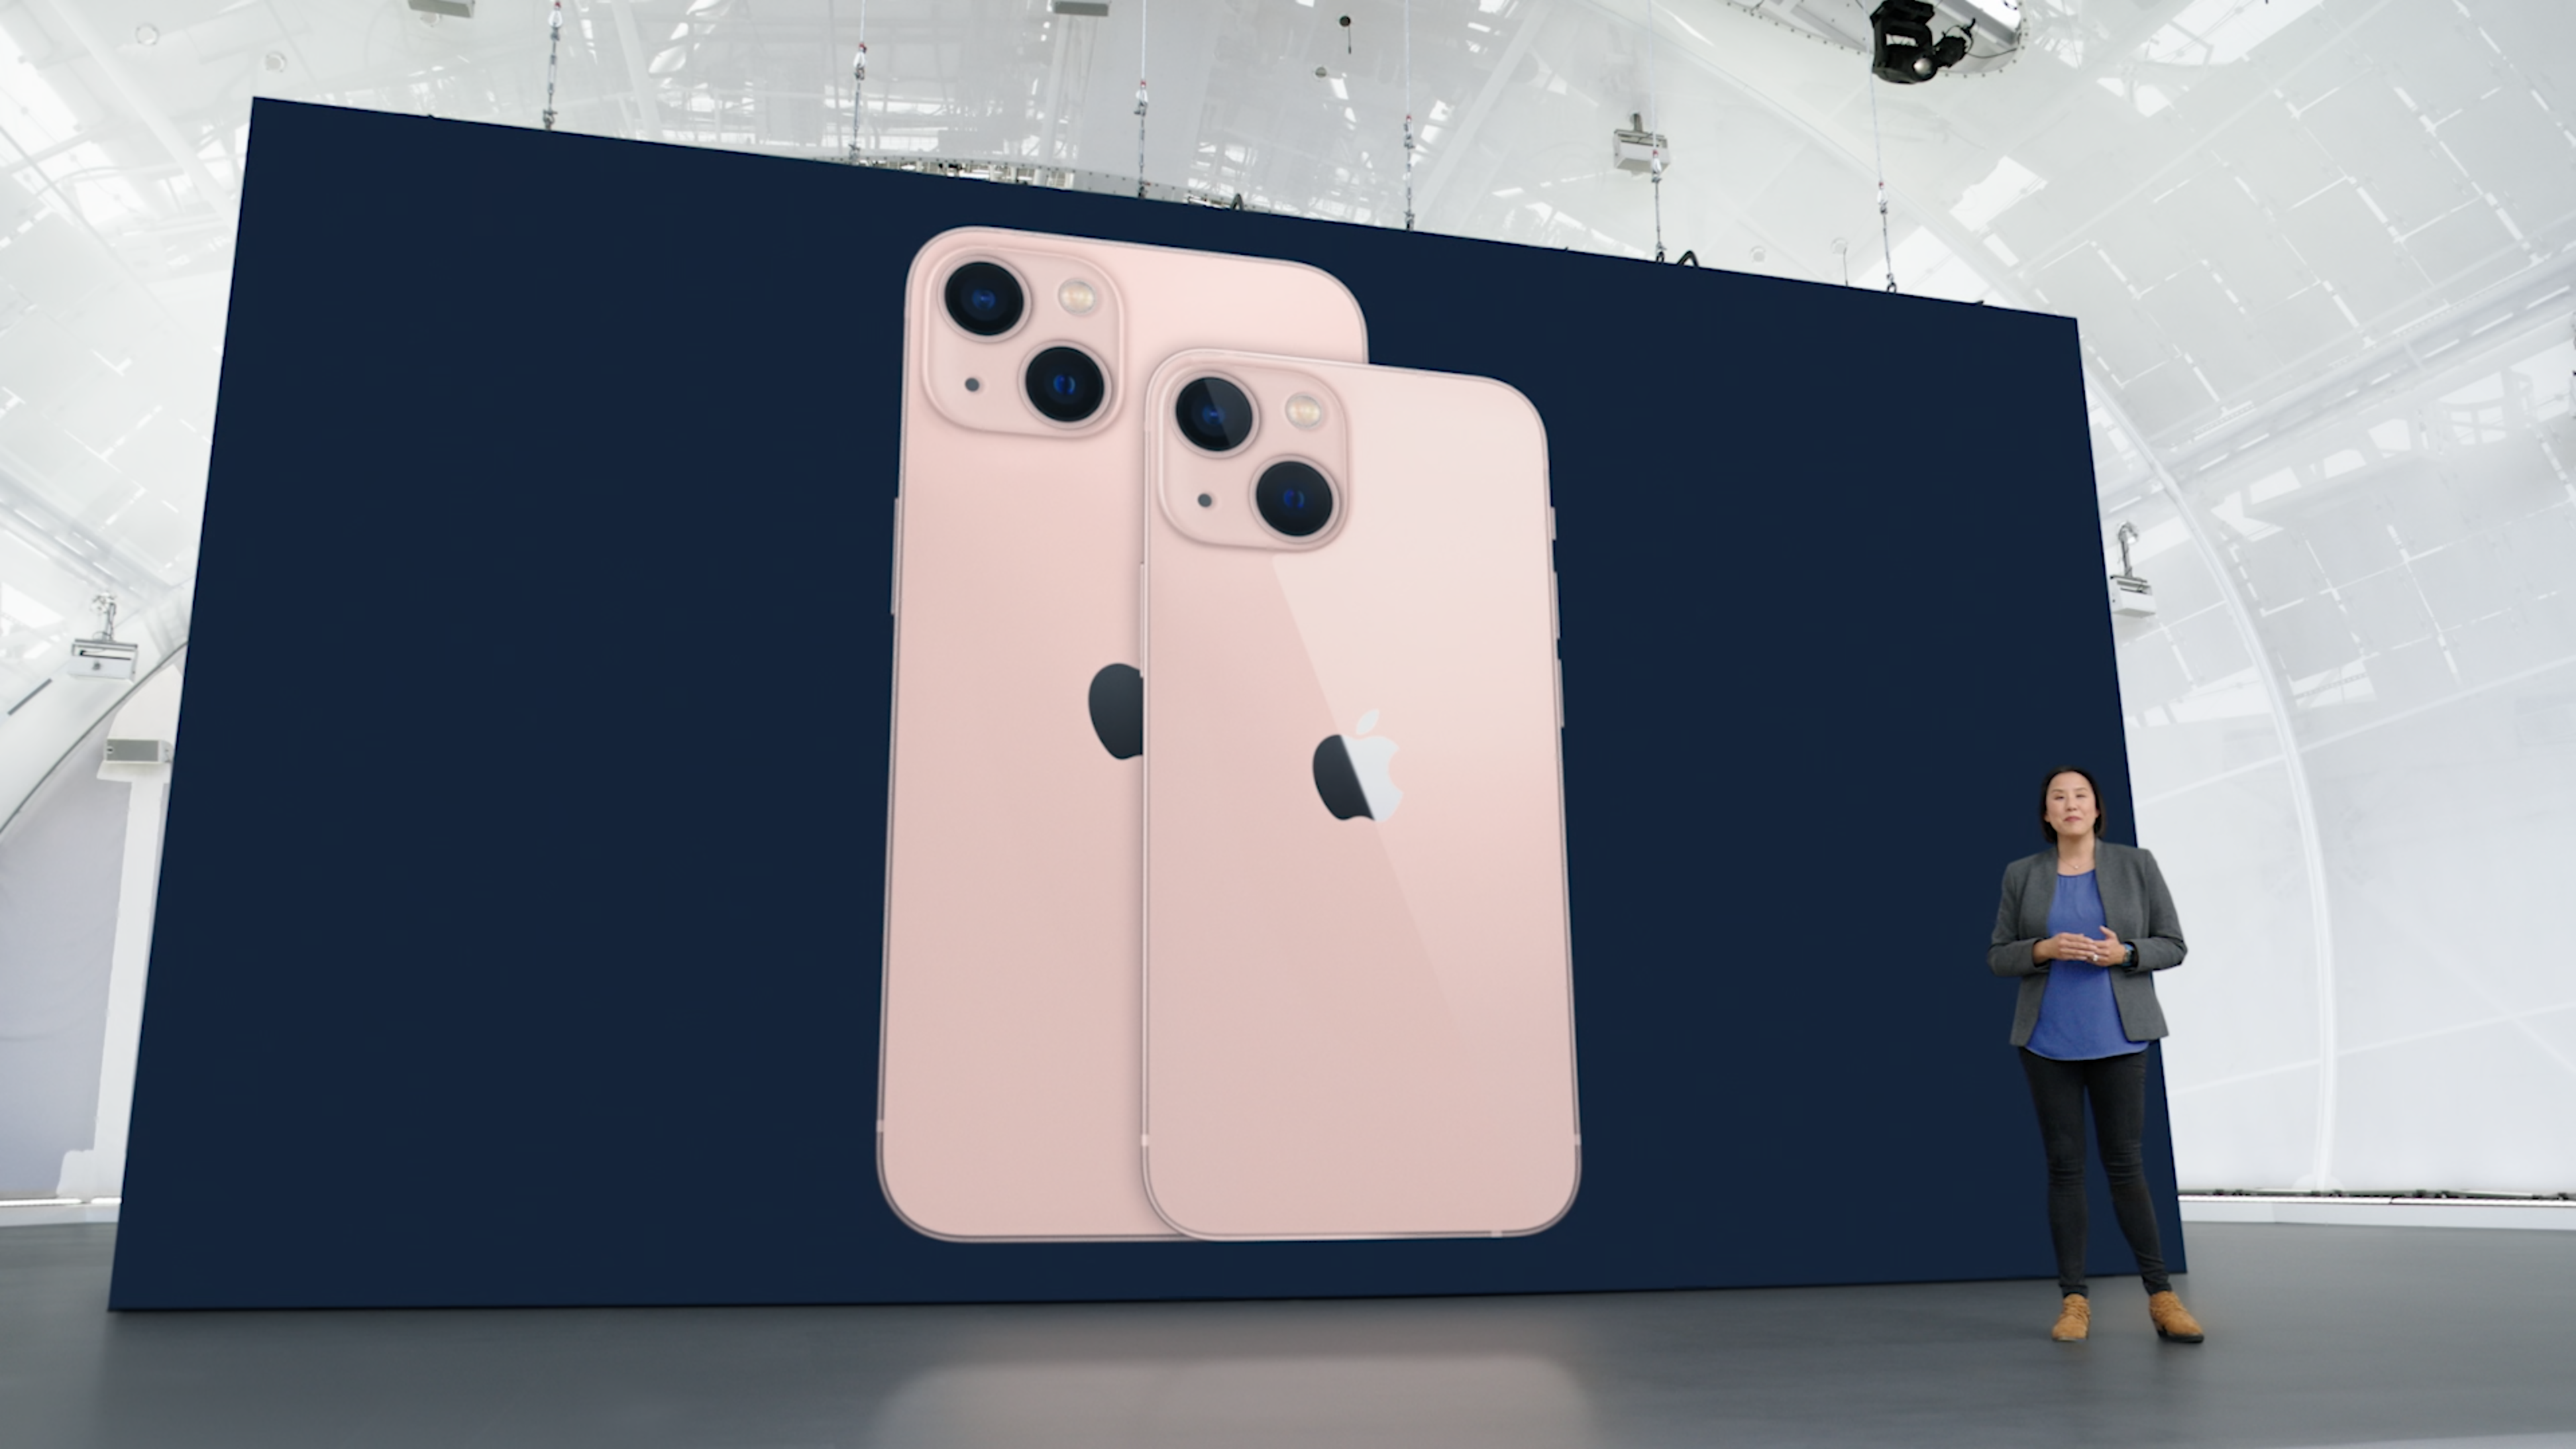 iPhone 13 release date: Apple's new phones ship on Sept. 24